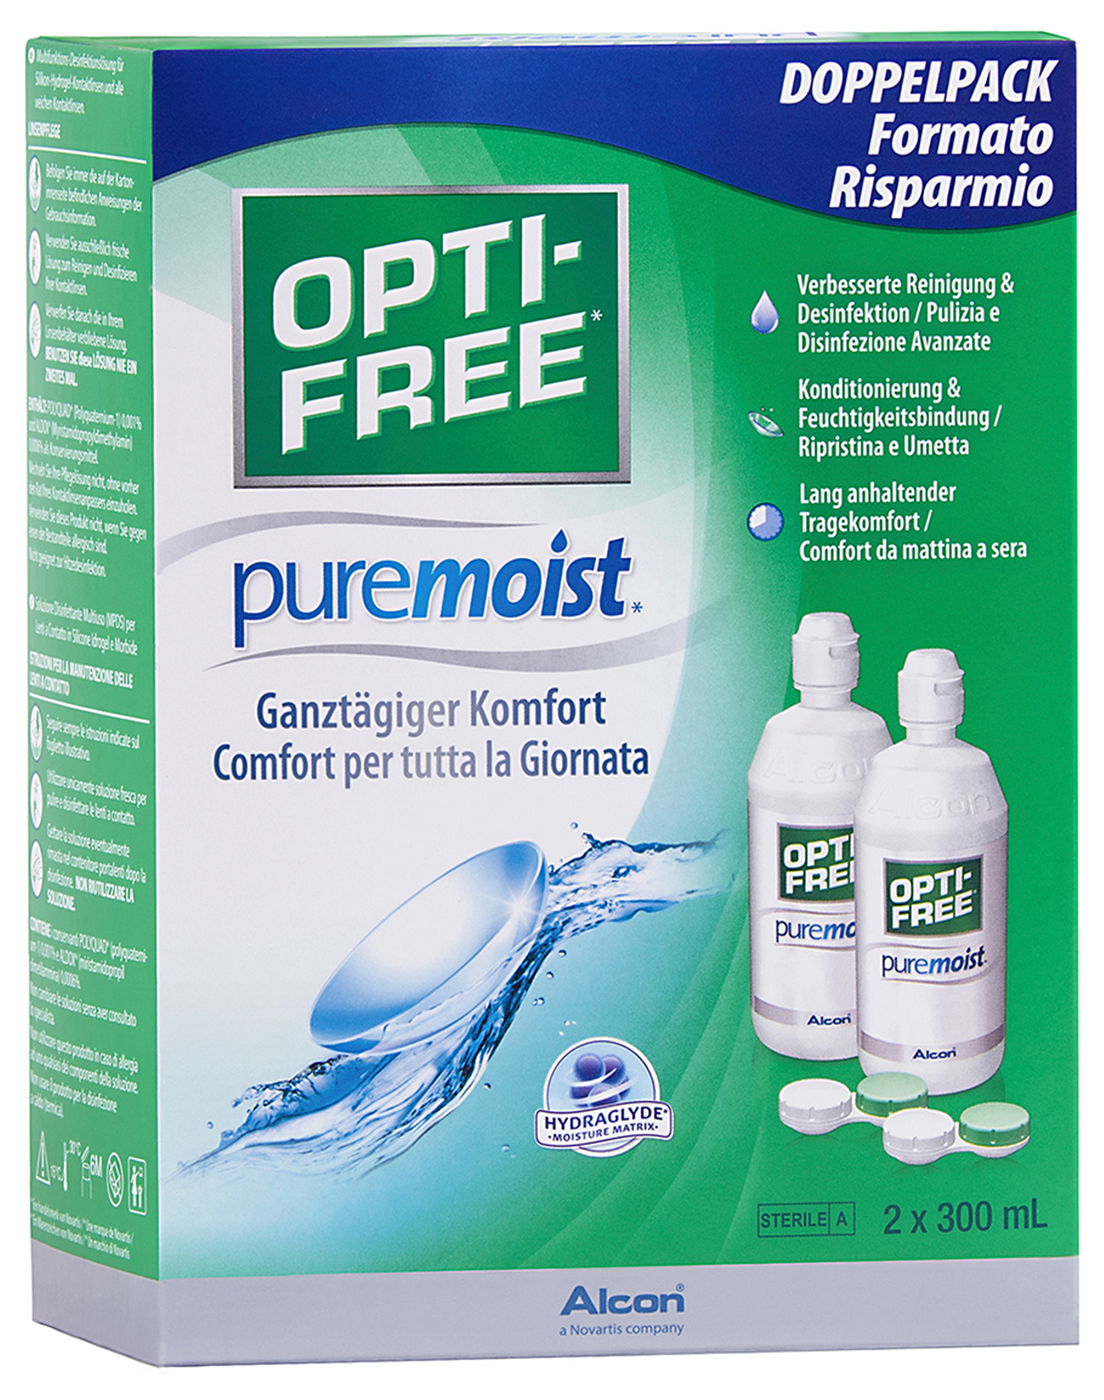 Opti-Free PureMoist Vorratspack, Alcon (2 x 300 ml)